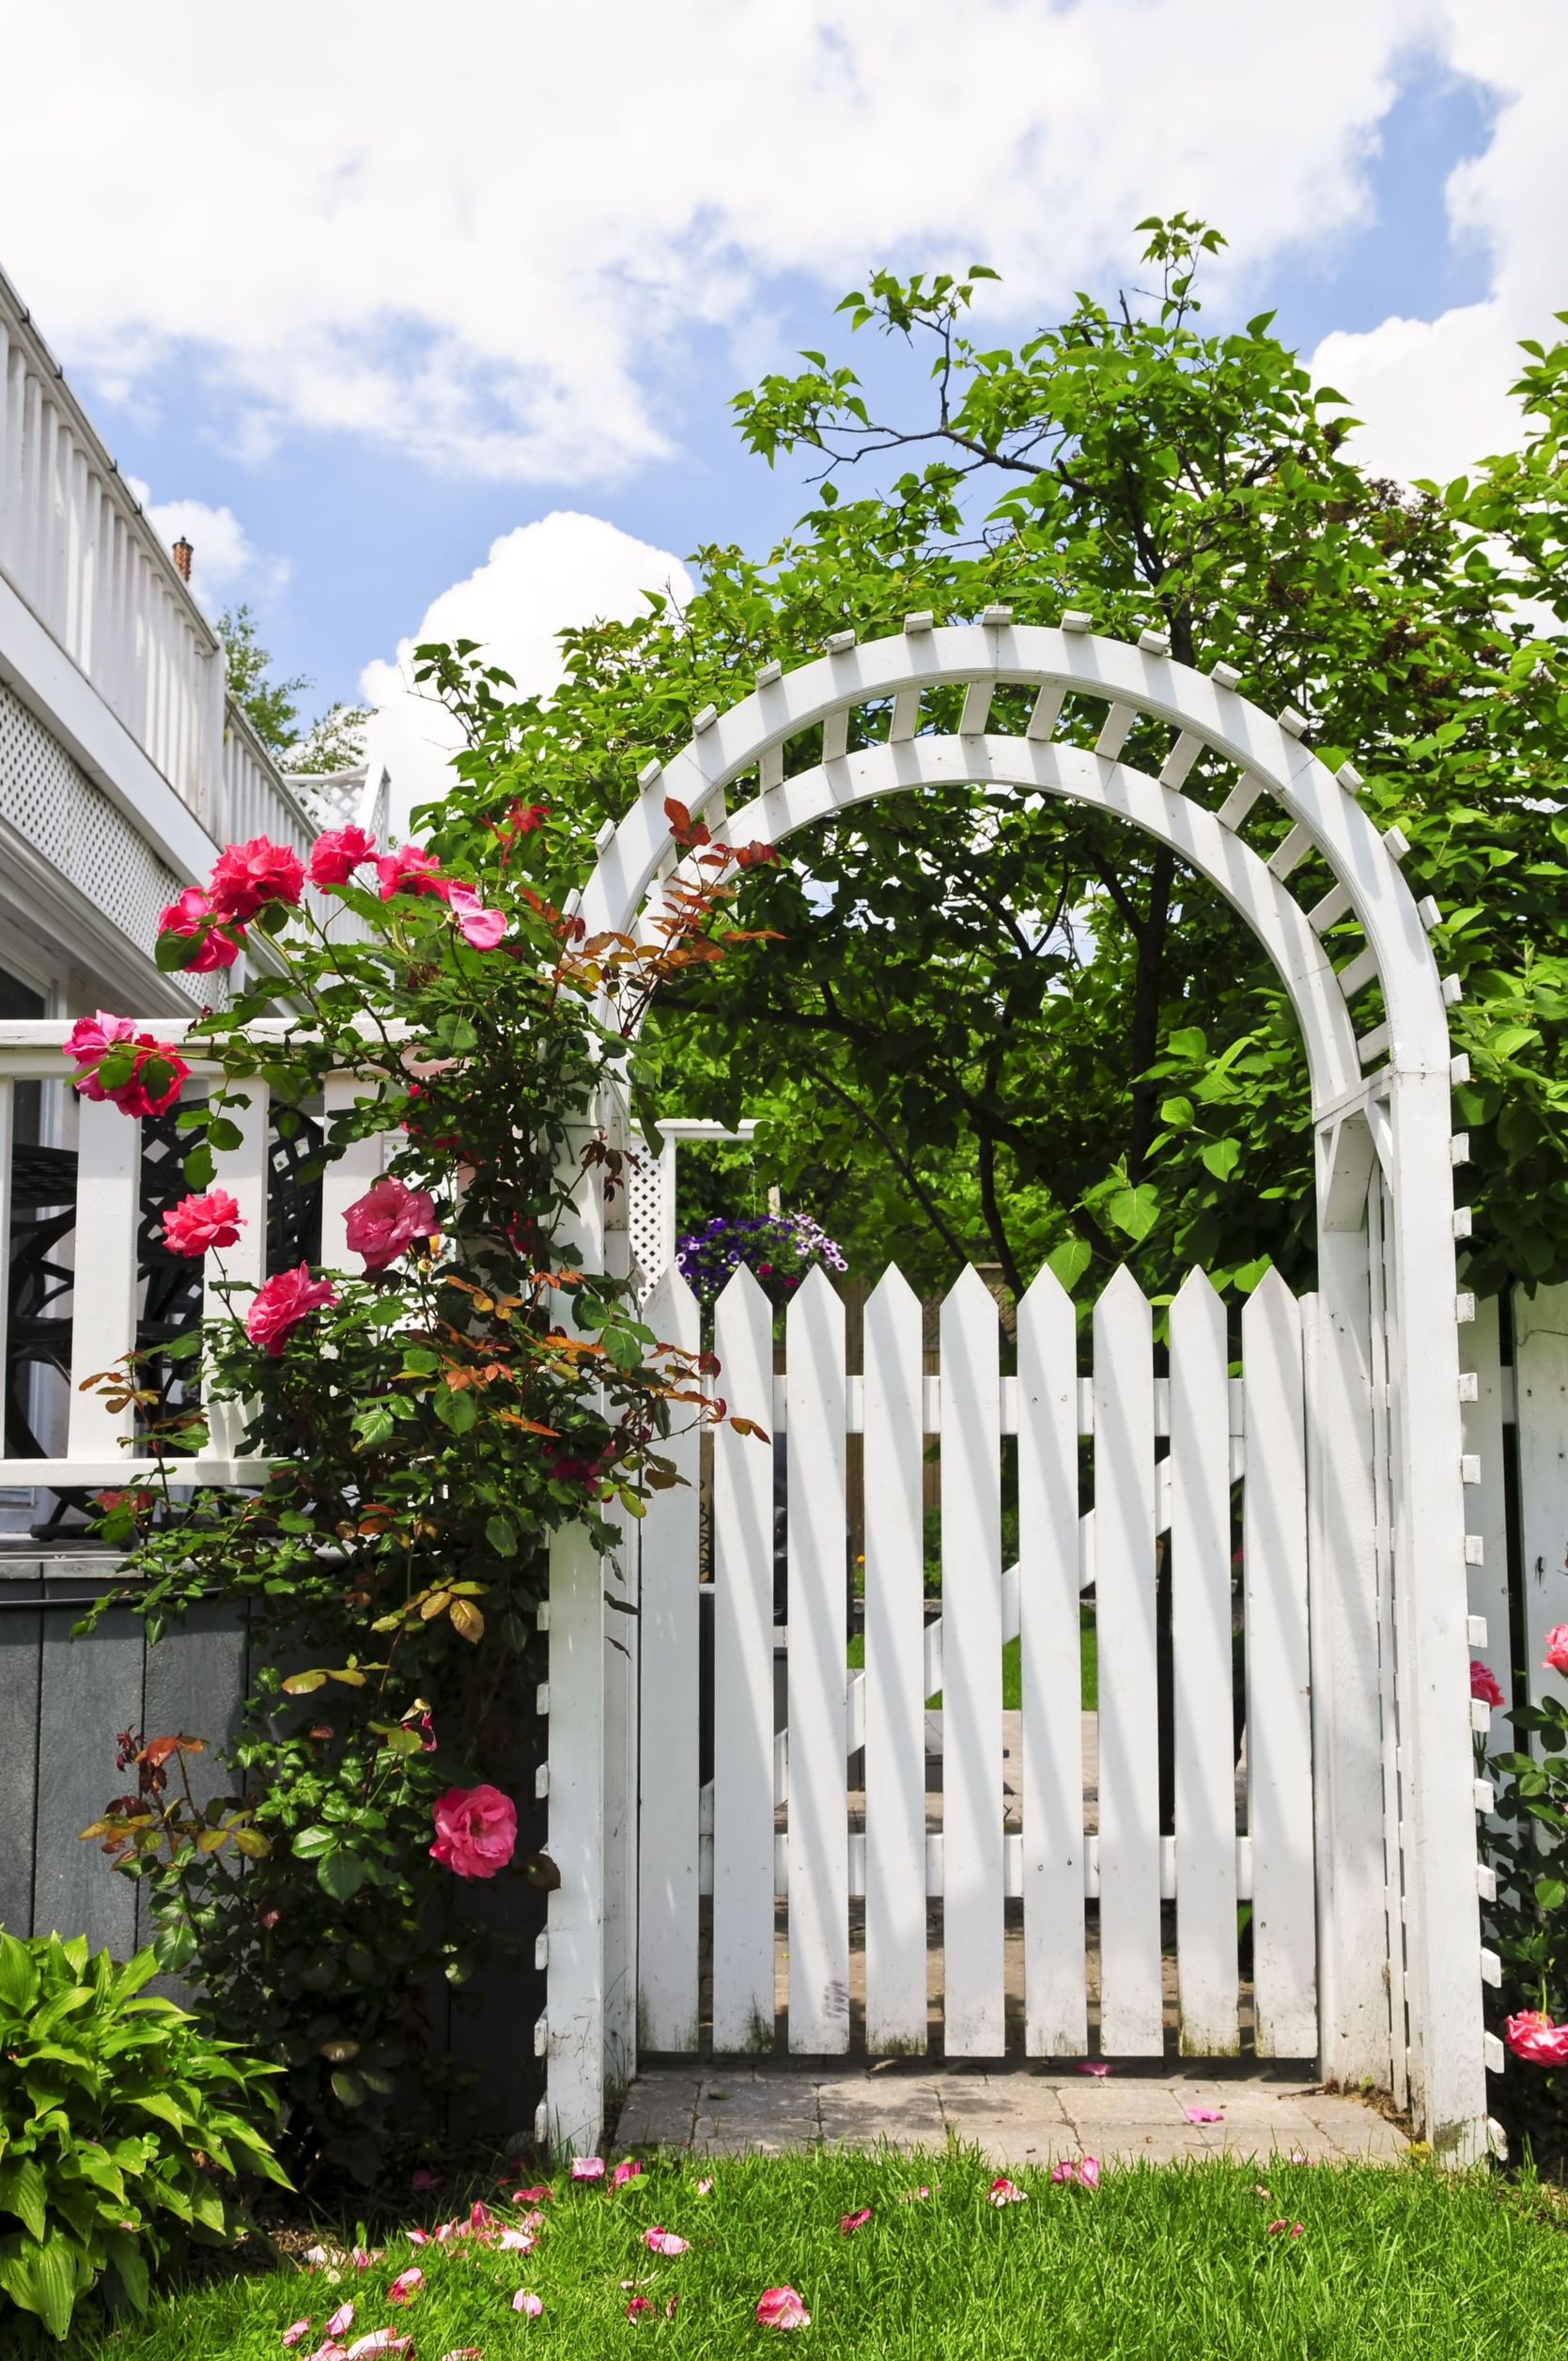 Vinyl Fencing for Your Suffolk County Home Will Improve Your Quality of Life